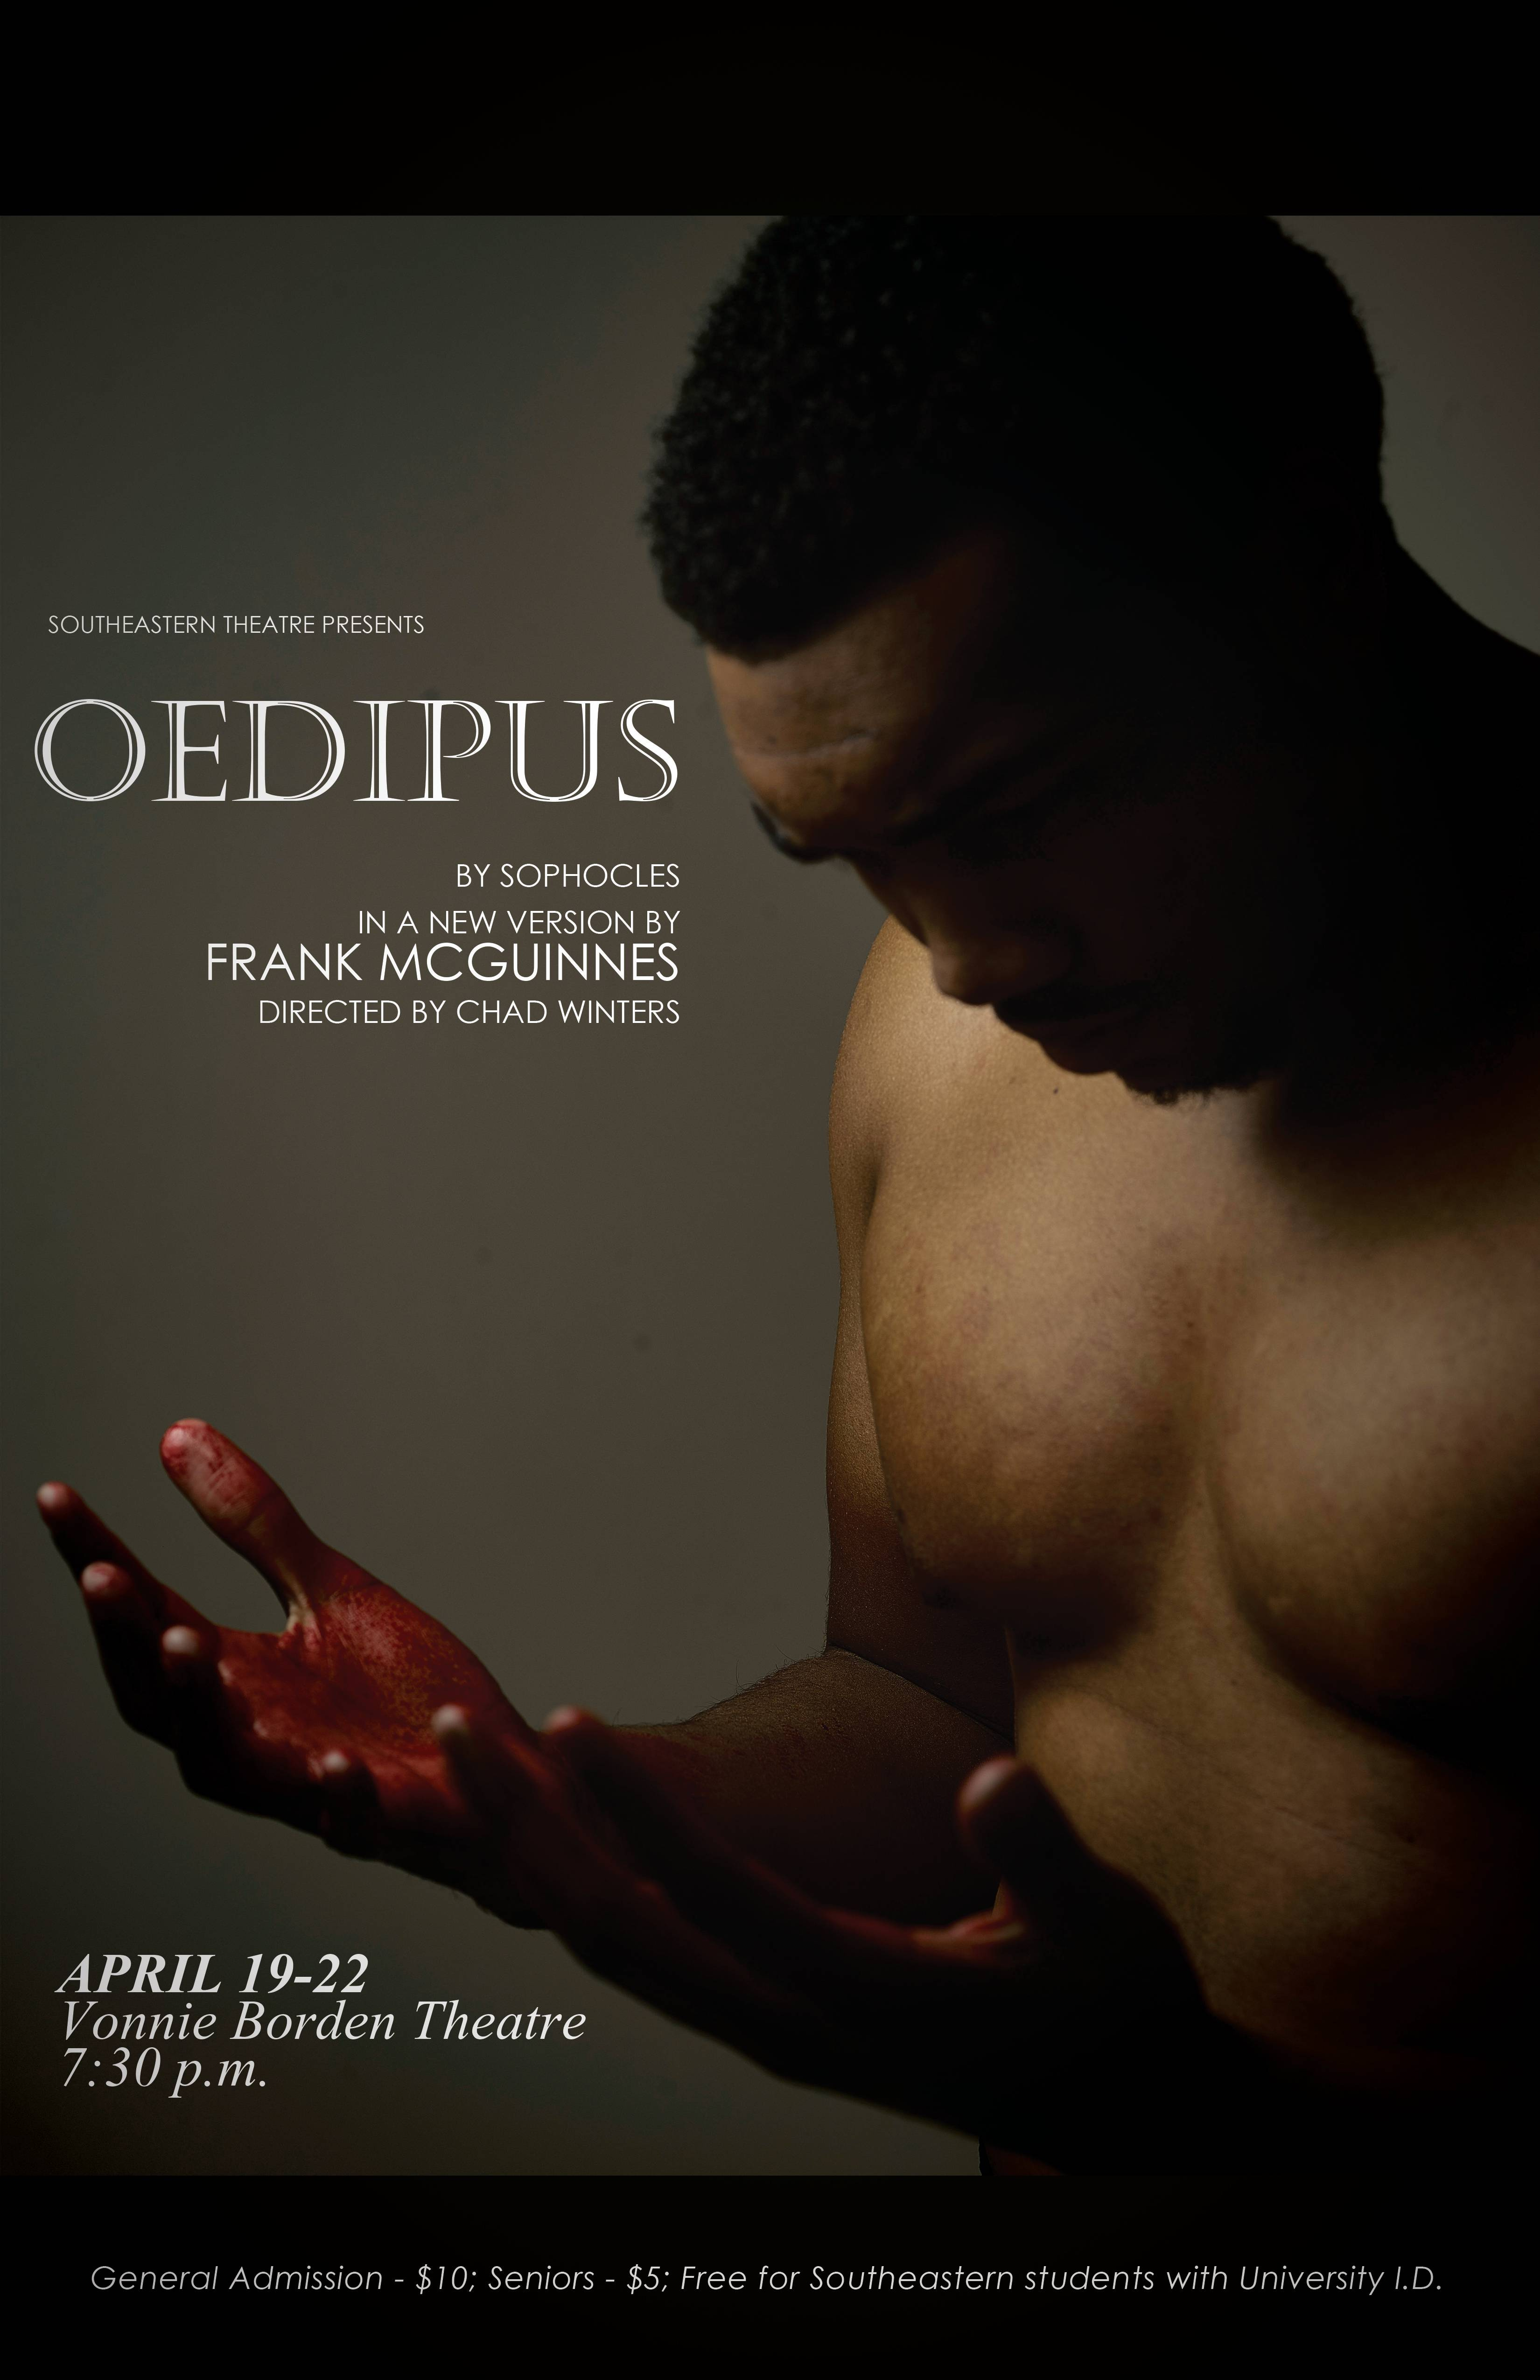 Publicity Poster the Oedipus running April 19-22 at 7:30pm at the Vonnie Borden Theatre